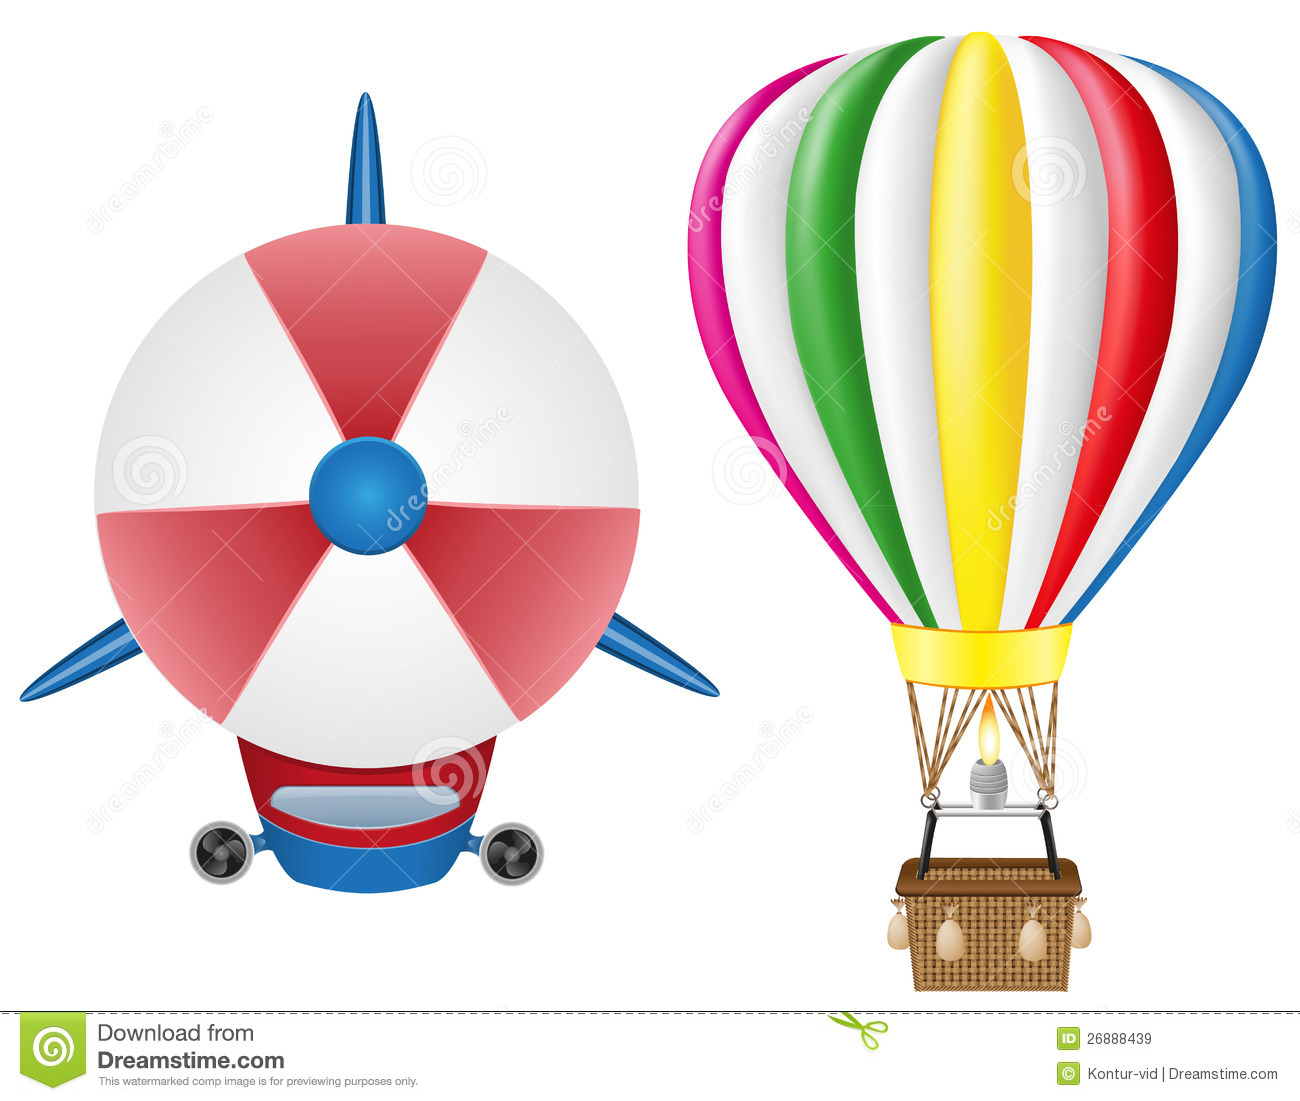 Airship zeppelin and hot air balloon royalty free stock images image 26888439